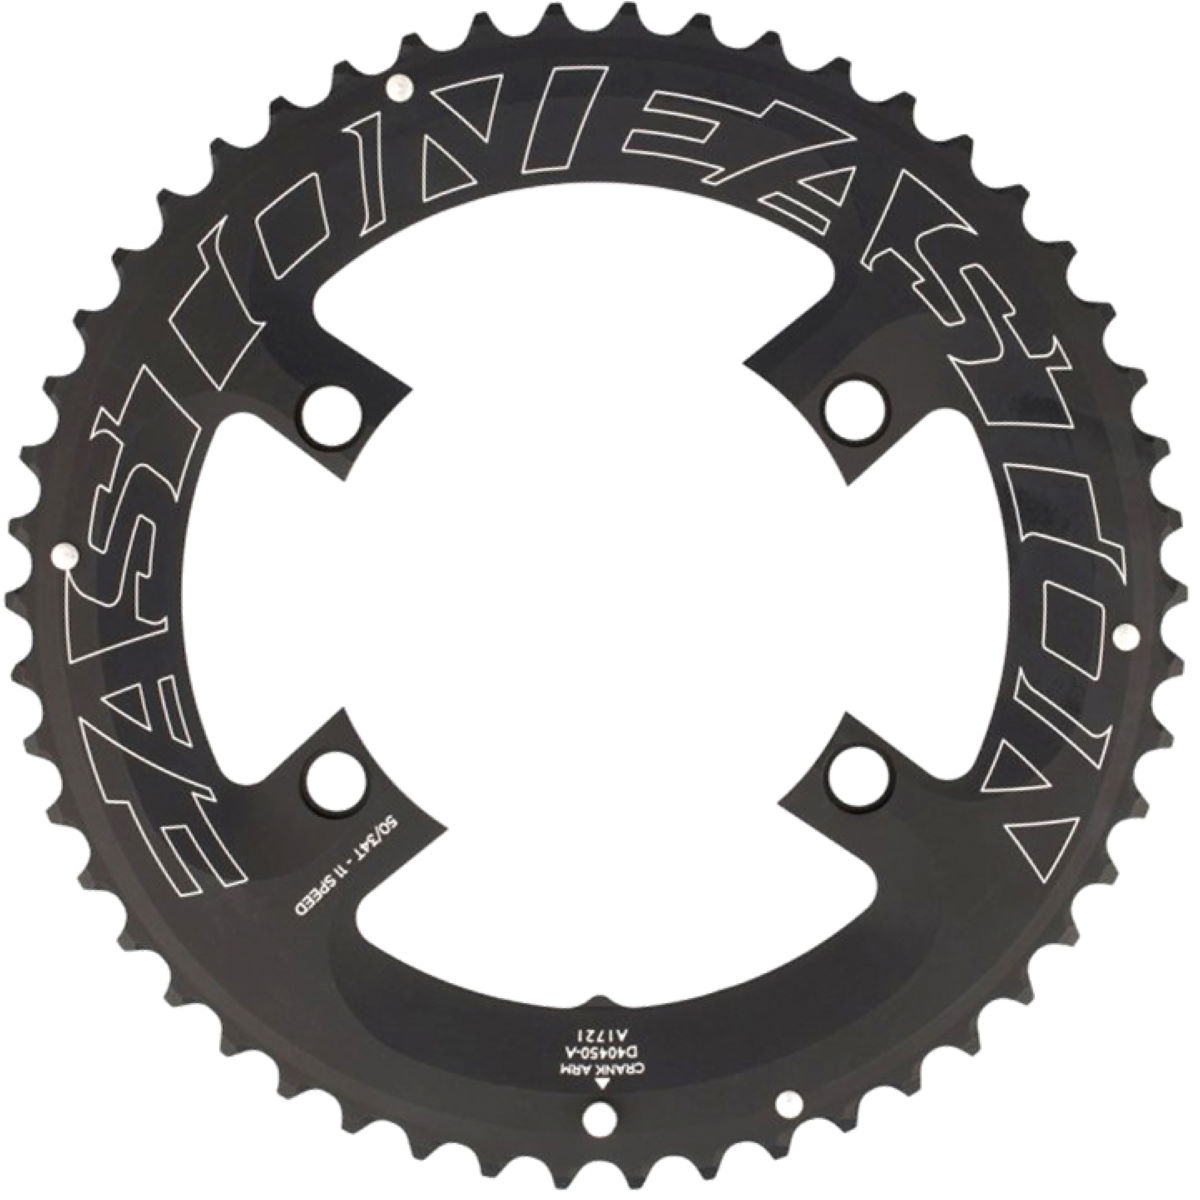 Easton 11 Speed Asymetric Chainring - 53t Black  Chain Rings